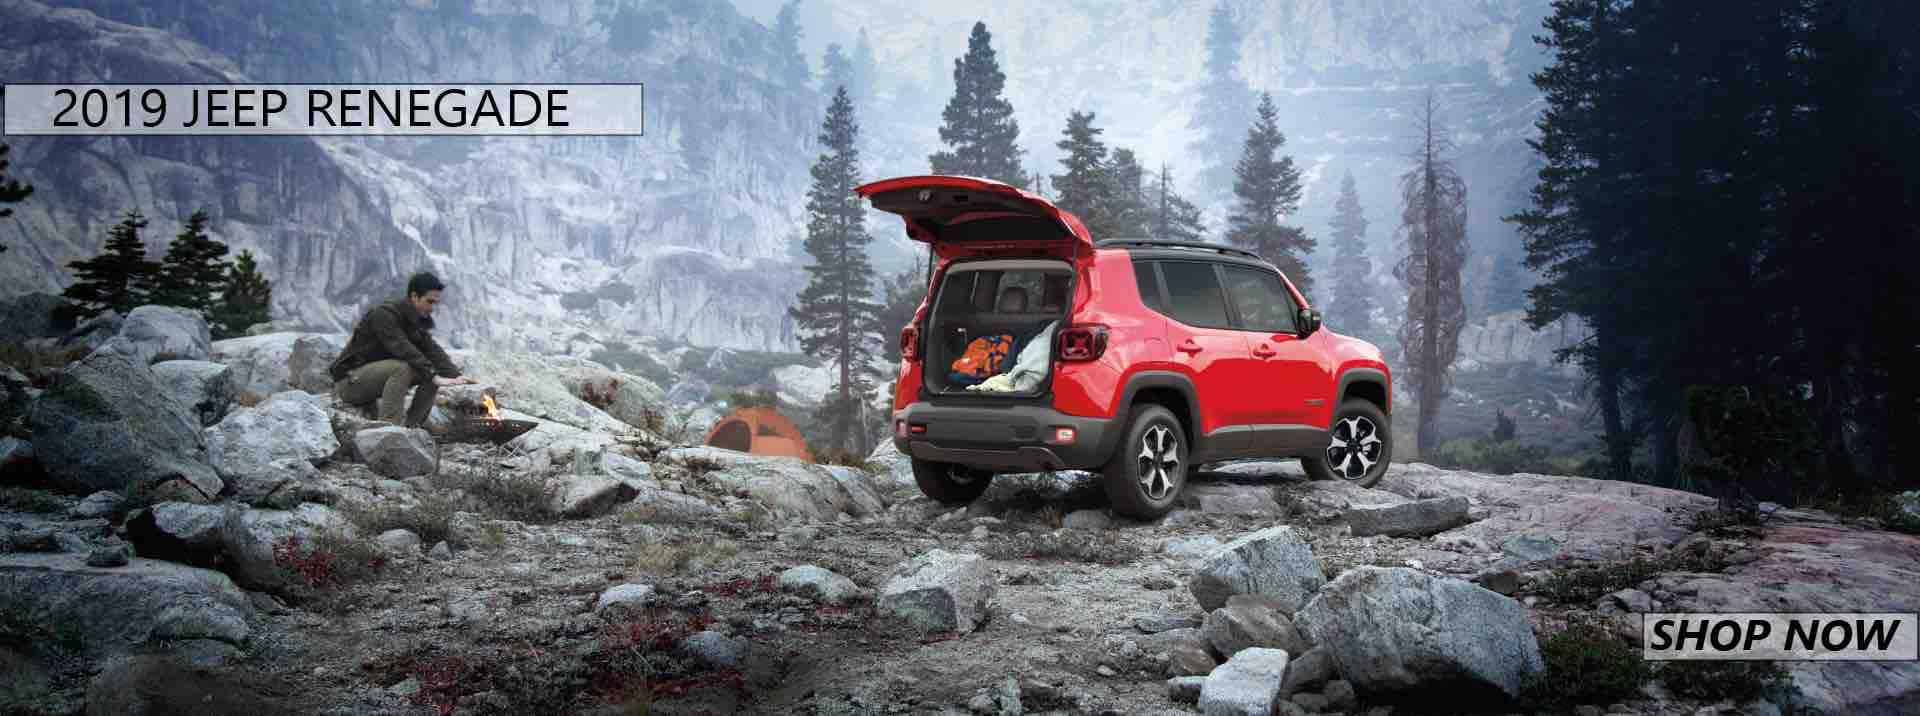 2019 Jeep Renegade parked on mountain camp